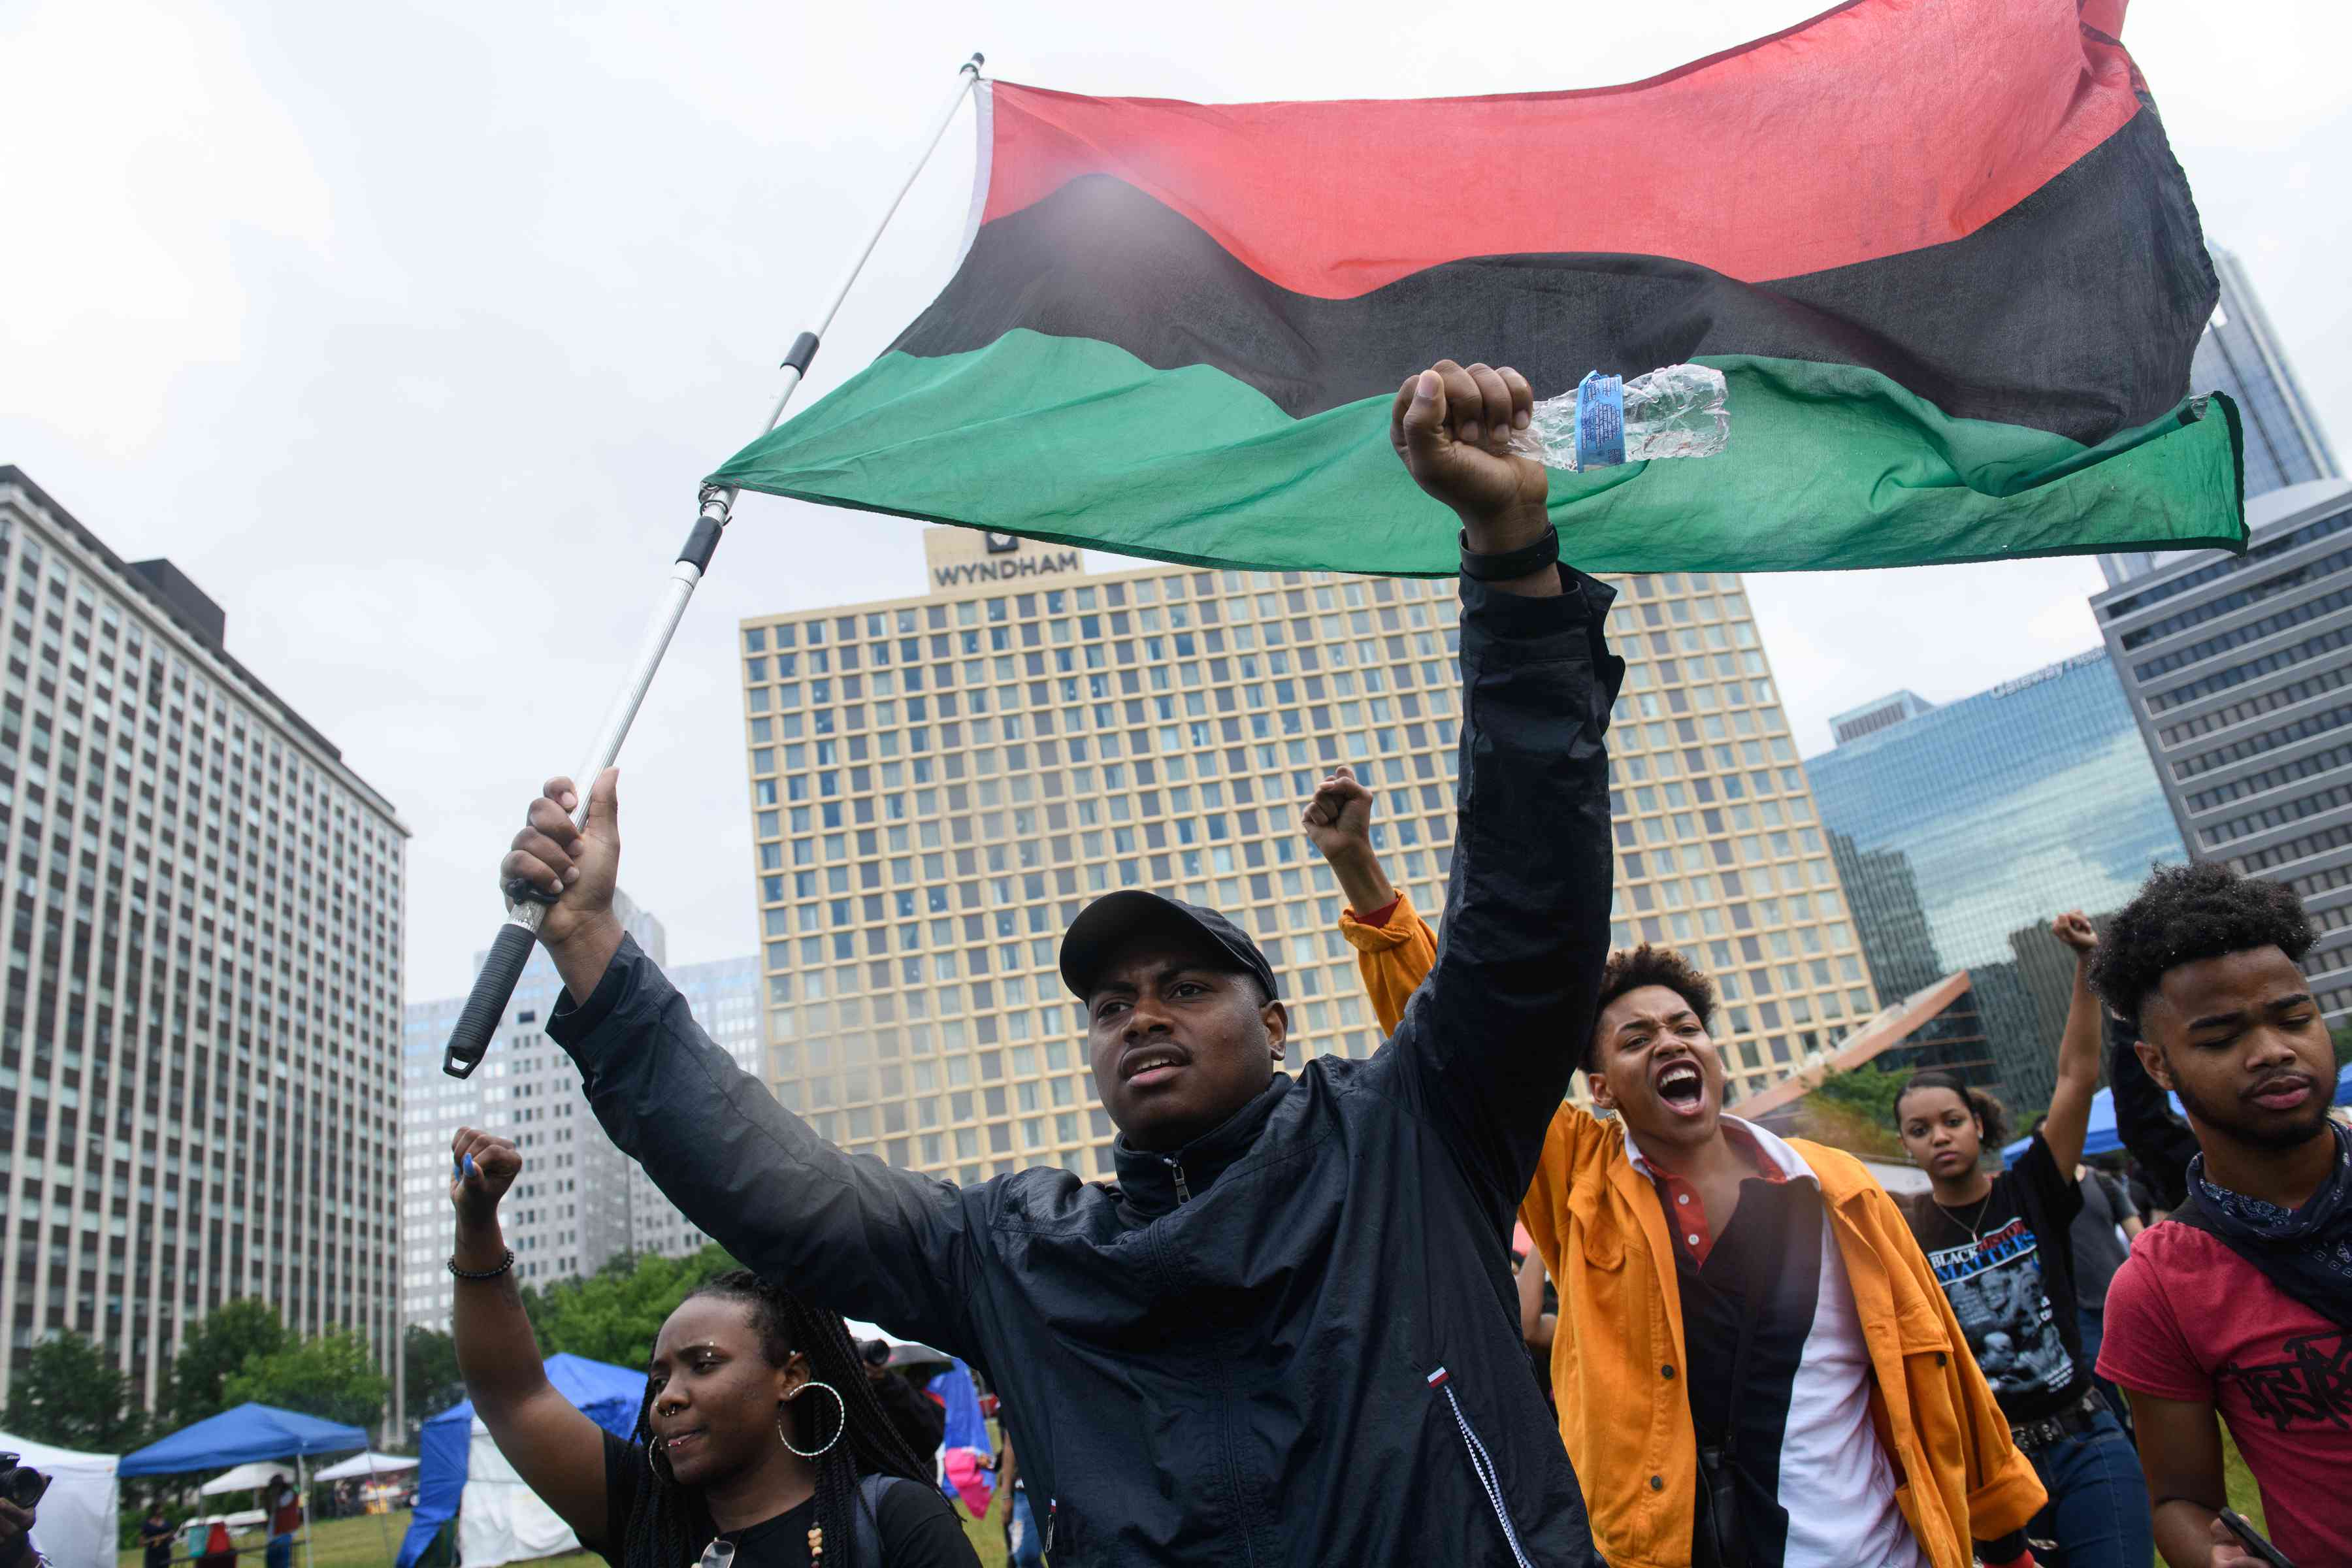 Man in parade holding Juneteenth flag